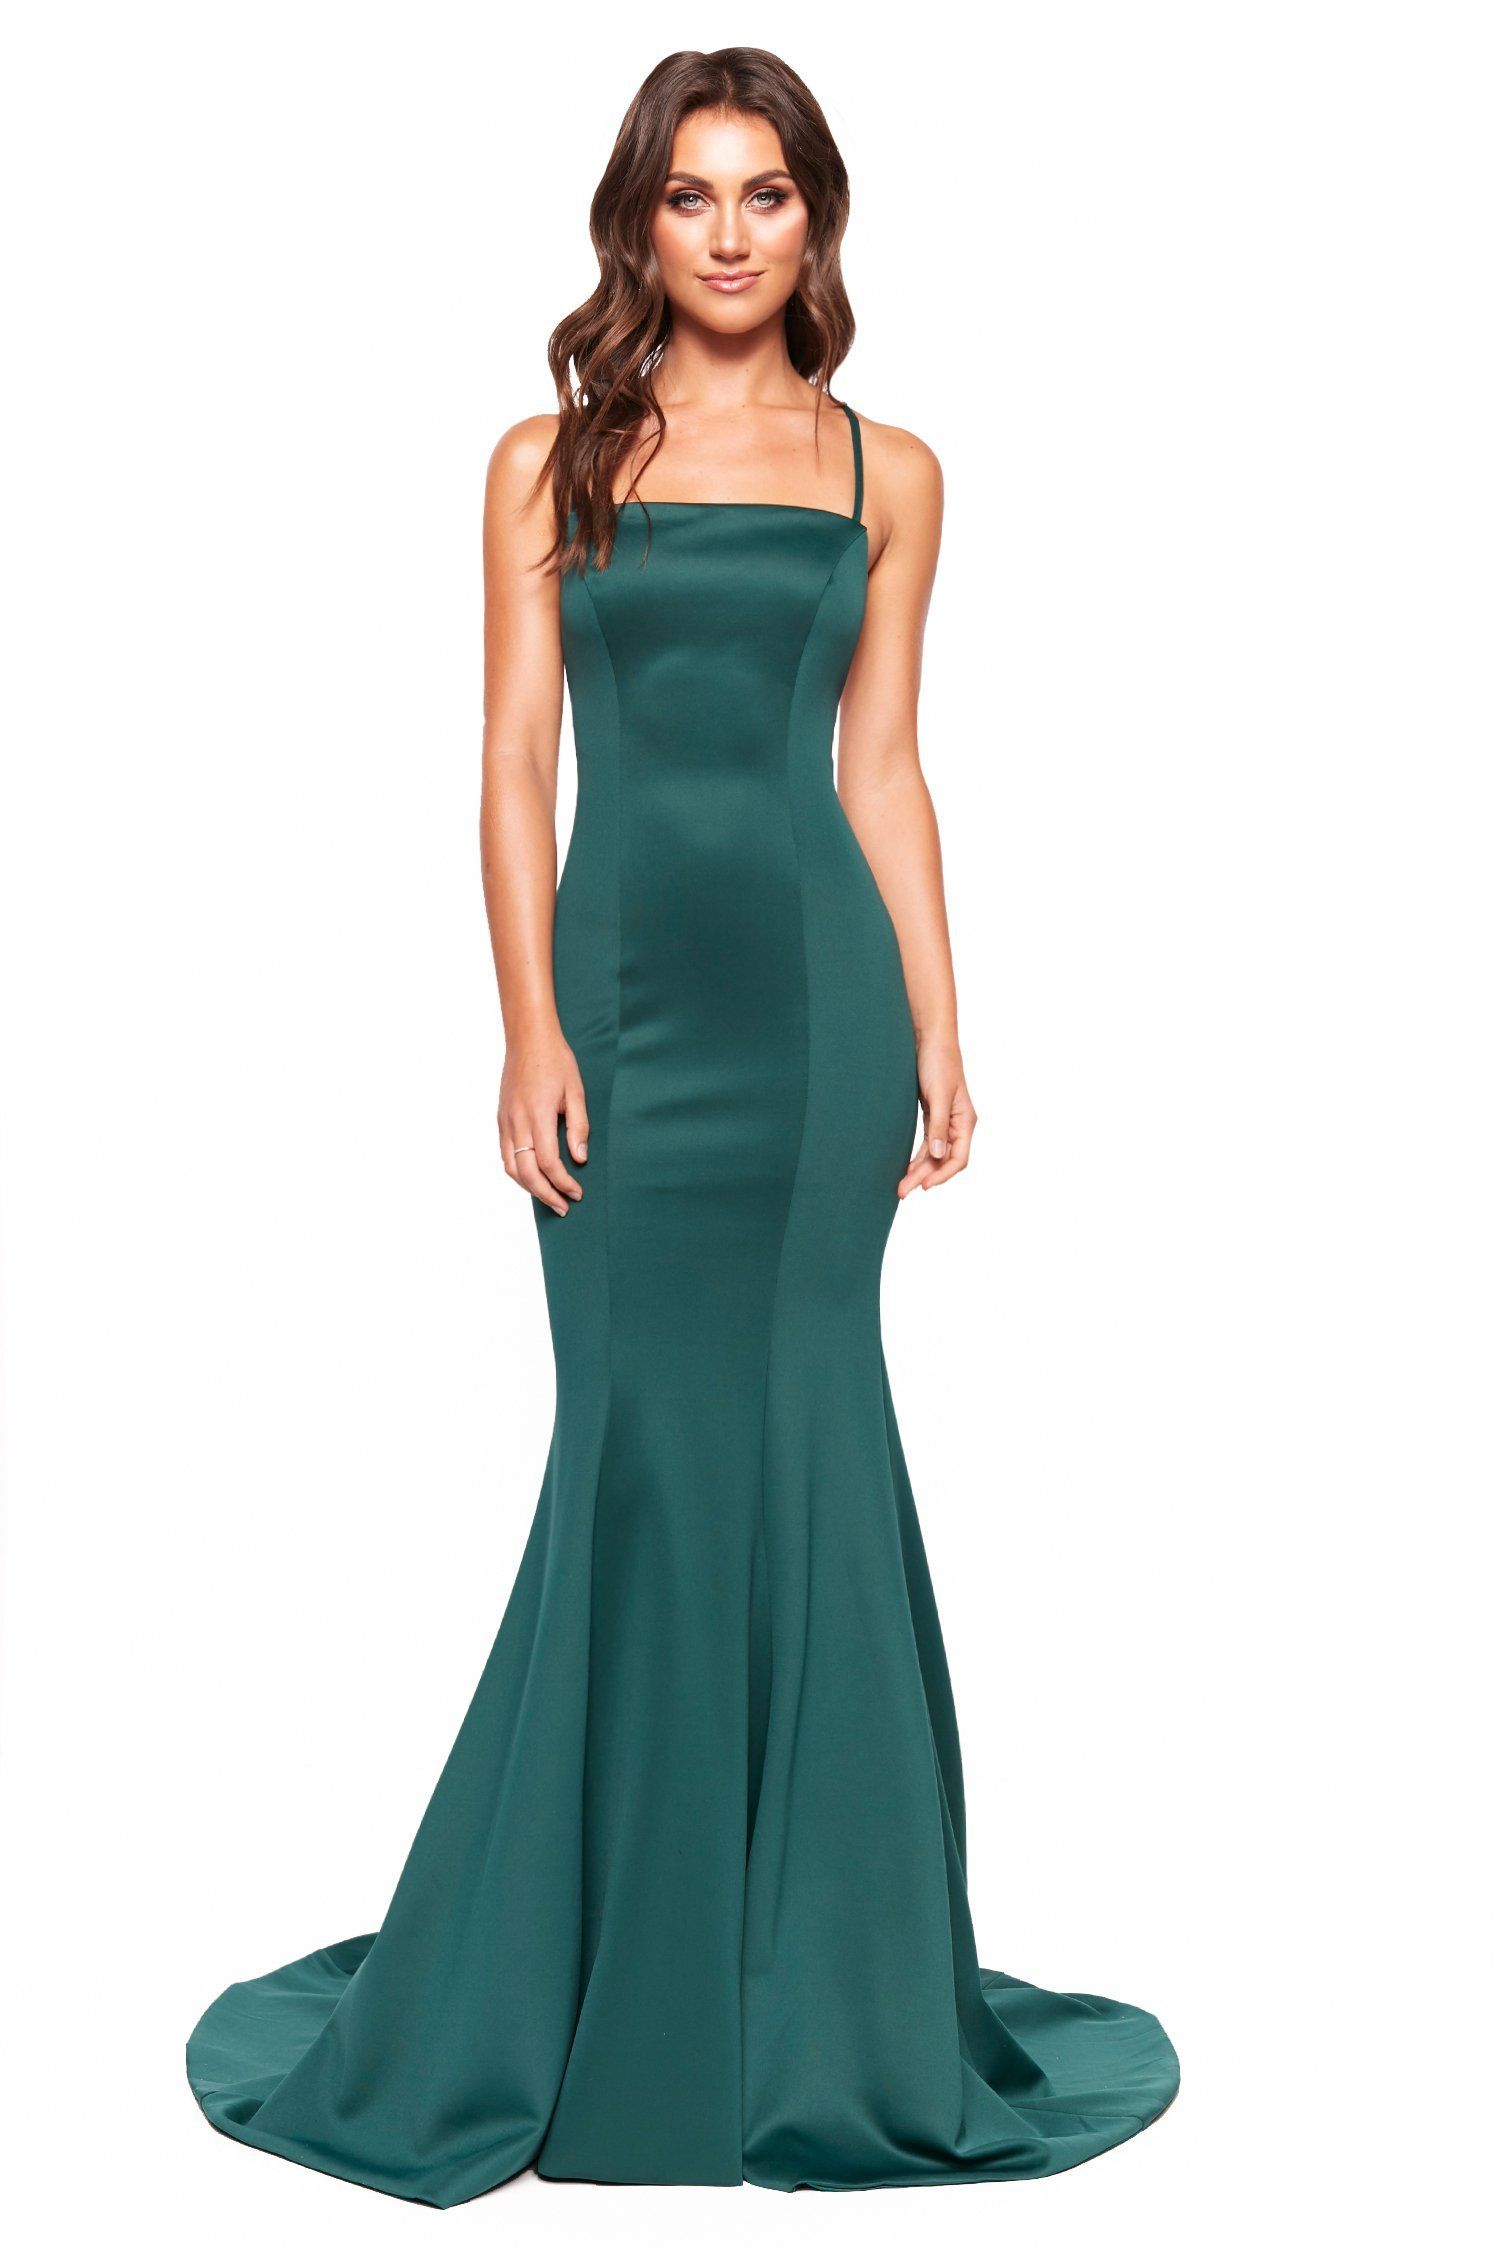 A N Luxe Amira Emerald Gown With Straight Neckline Lace Up Back Fancy Dresses Dresses Stylish Dresses [ 2249 x 1500 Pixel ]